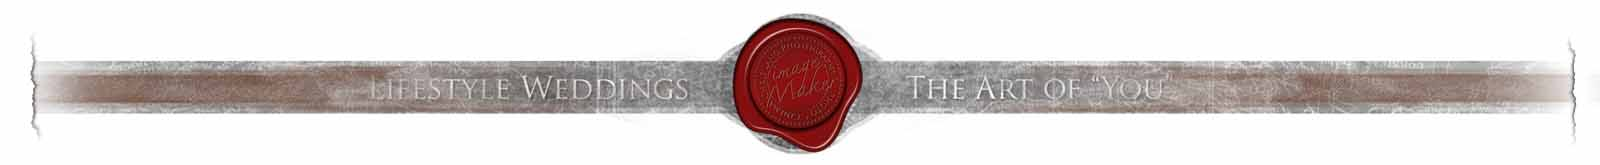 Chris Lang Weddings - Wilmington NC Wedding Photographers - Lifestyle Wedding Photography